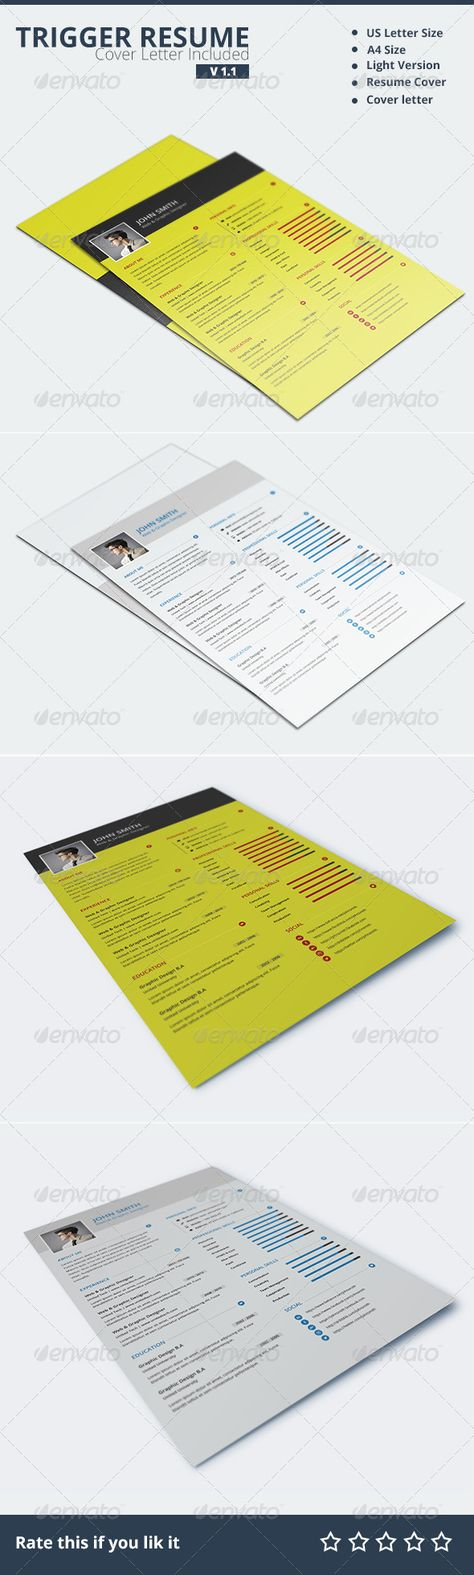 Stylish Resume  Cover Letter Template Design Resume cover letters